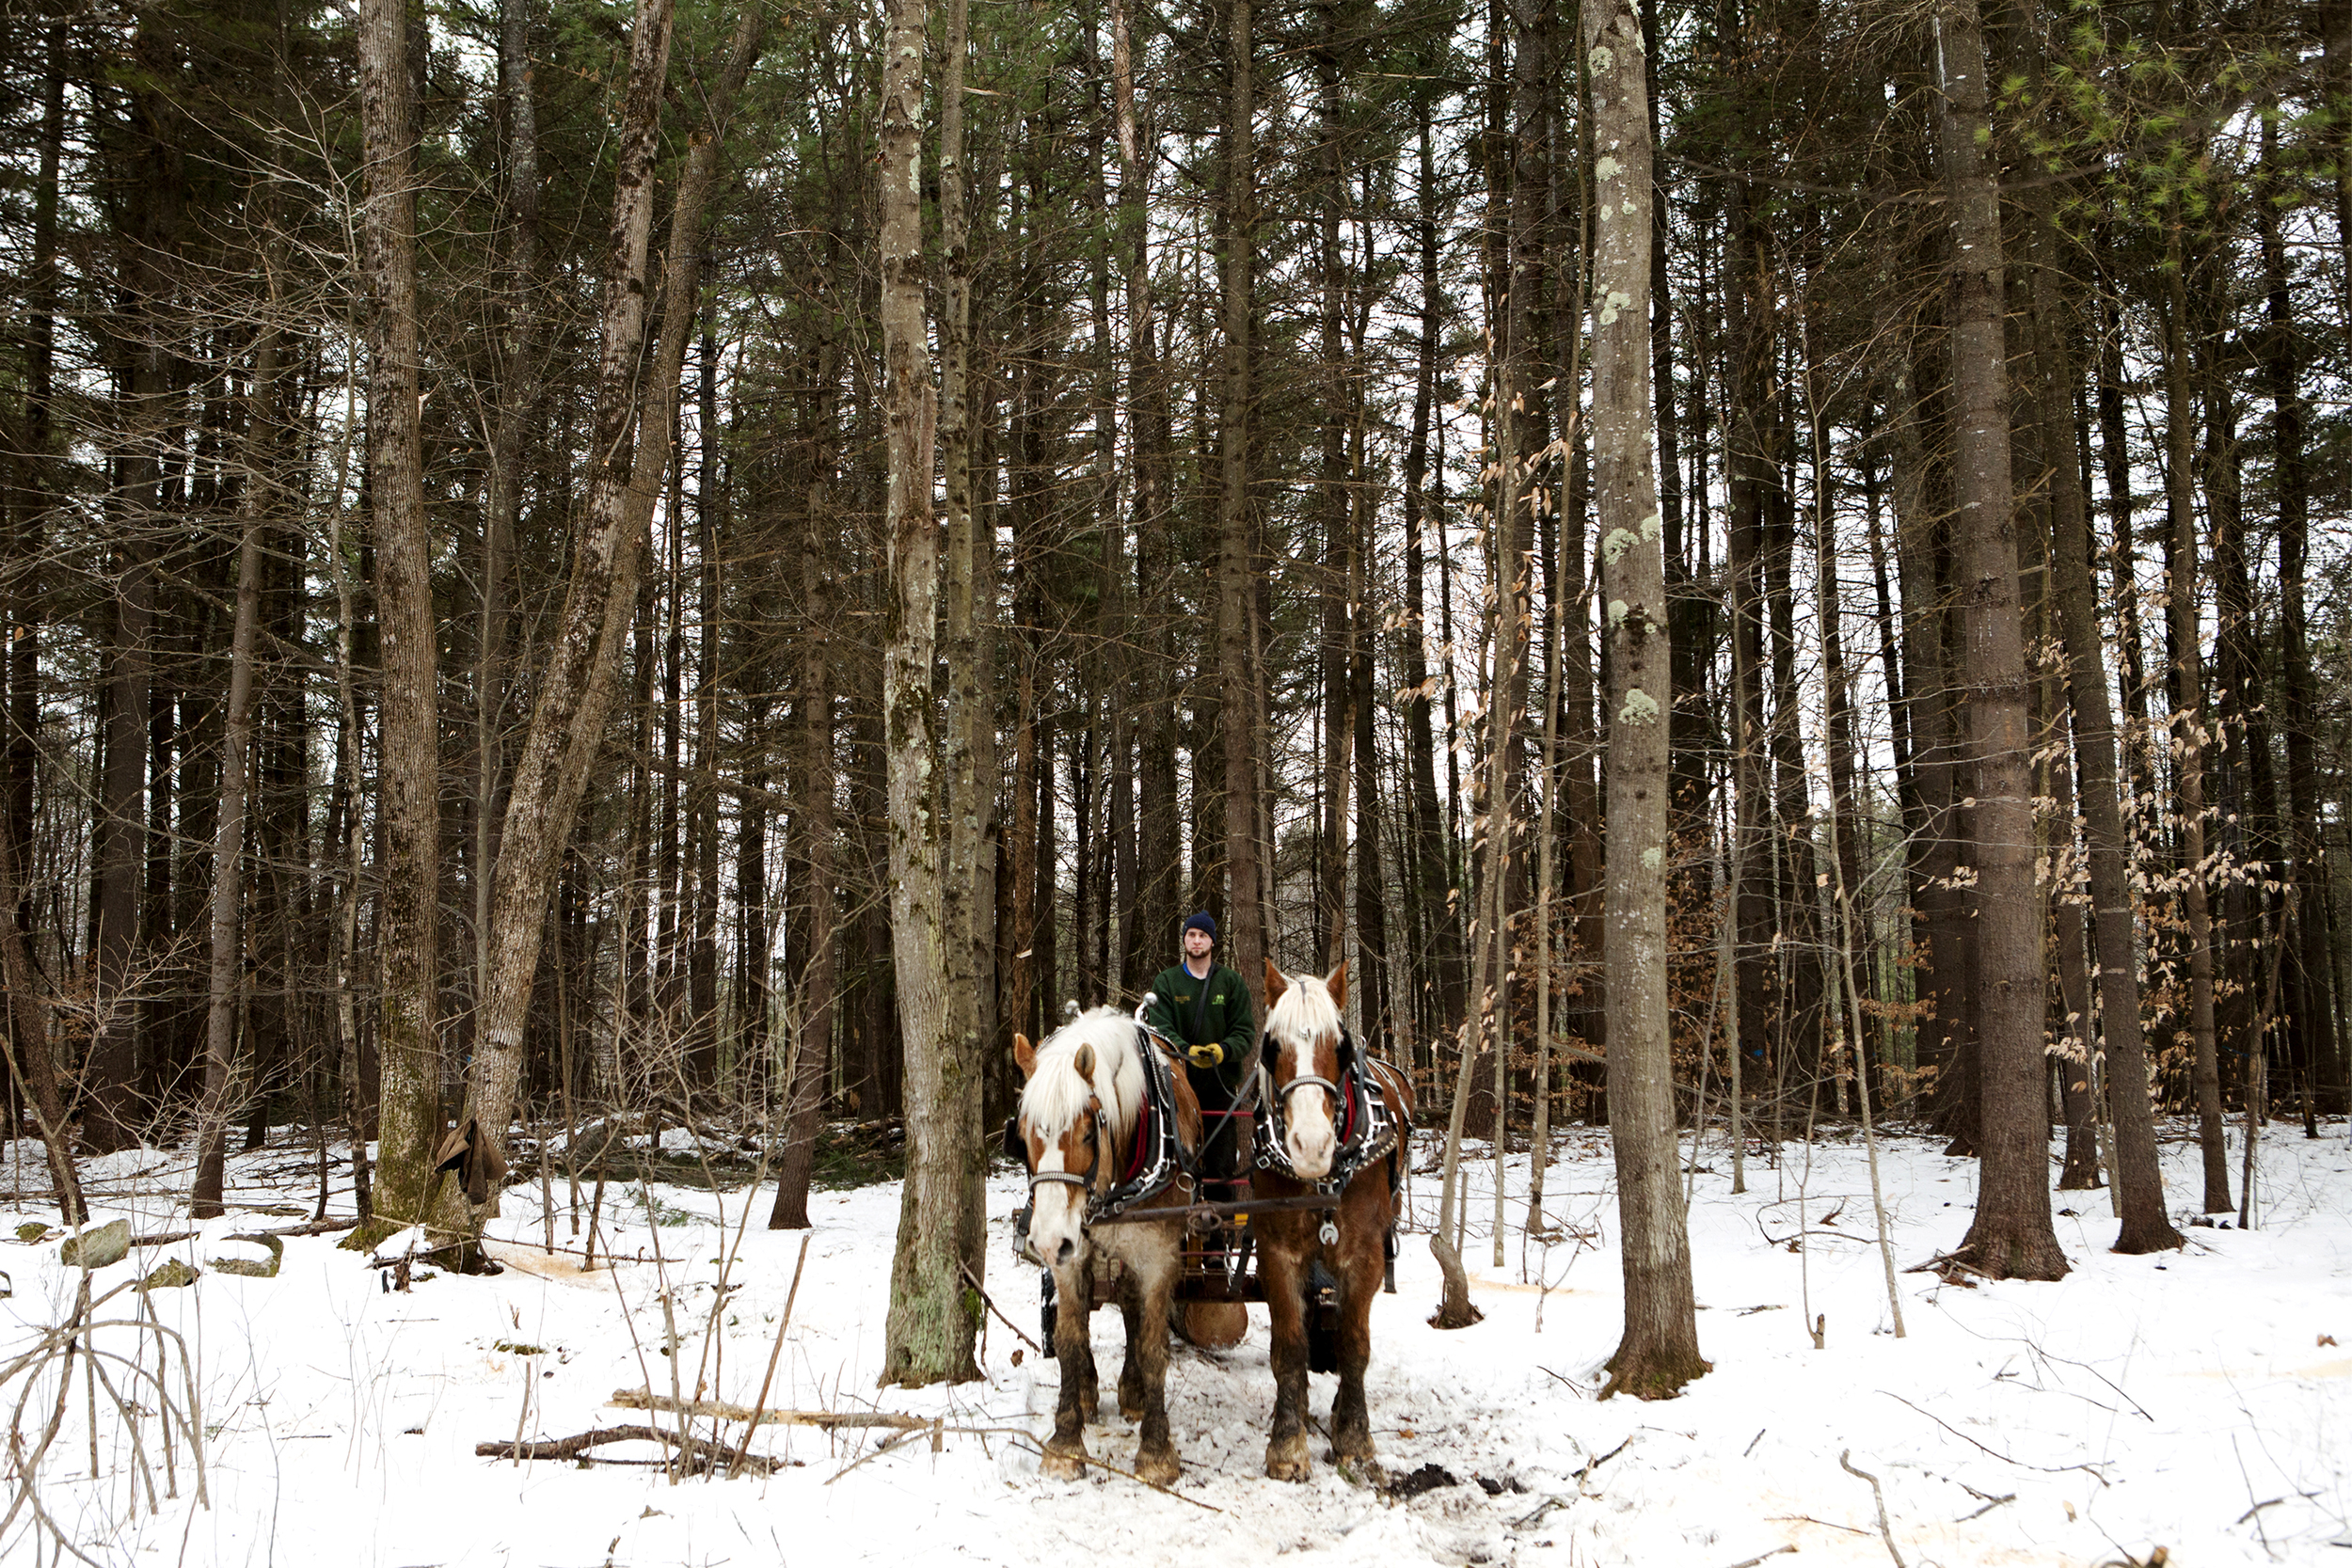 Jackson Riel and  his team of draft horses, Captain, left, and Duke, pull a freshly cut pine out of the woods behind Grange Hall in Chichester, N.H. on February 1, 2014. The Chichester Conservation Commission thinned out the woods using draft horse teams in order to make the selective cut logging job as low impact as possible.